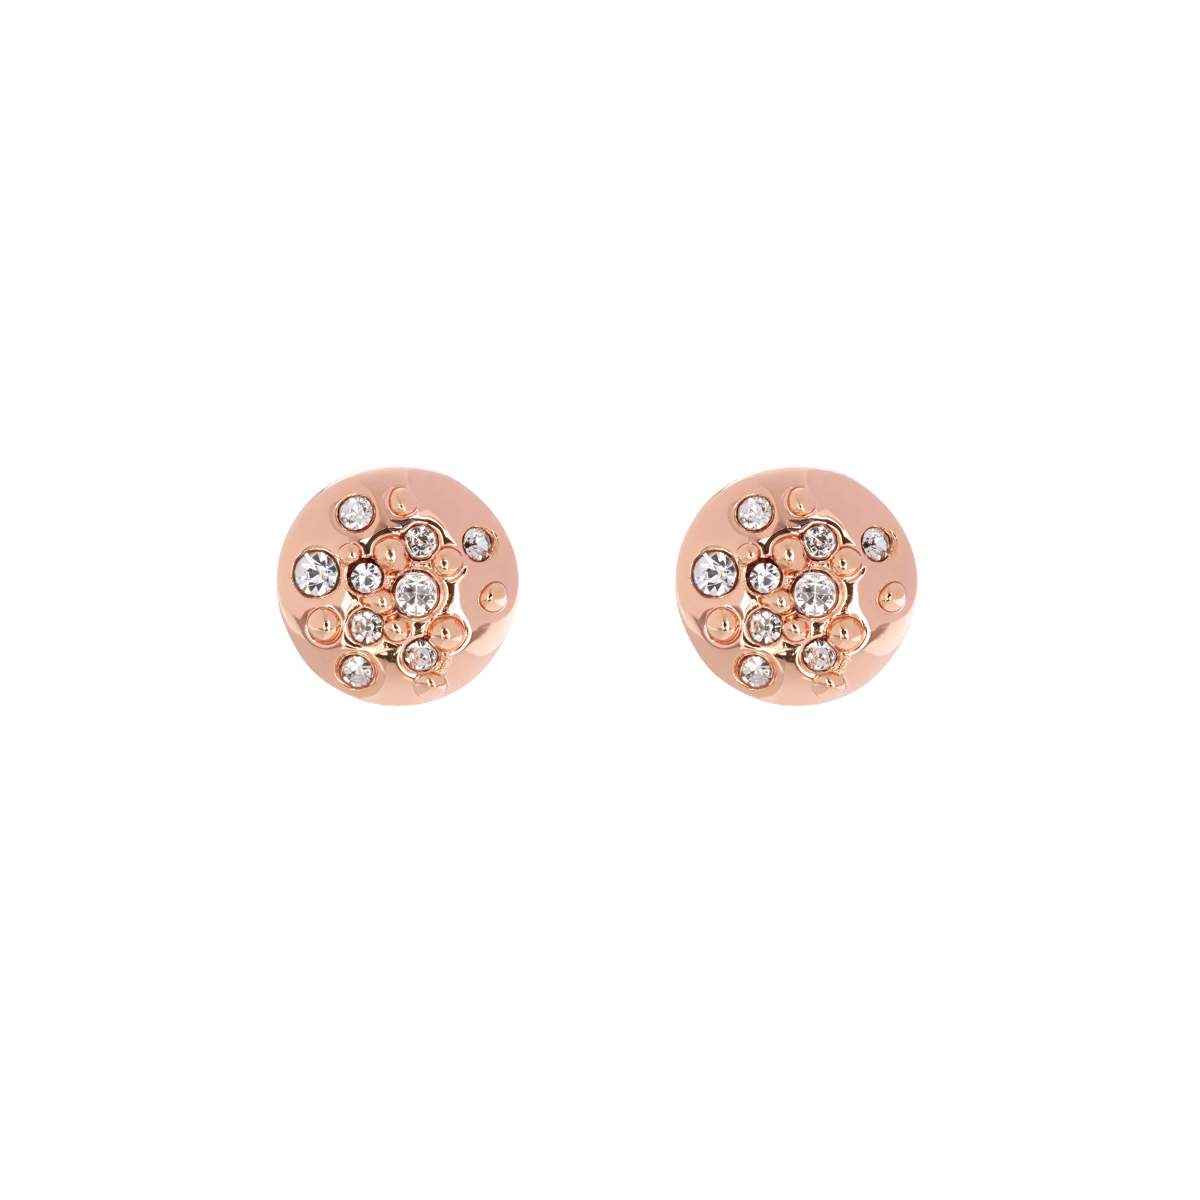 KMJ562-24-02 CRYSTAL SPRINKLE STUD EARRINGS - ROSE GOLD CRYSTAL